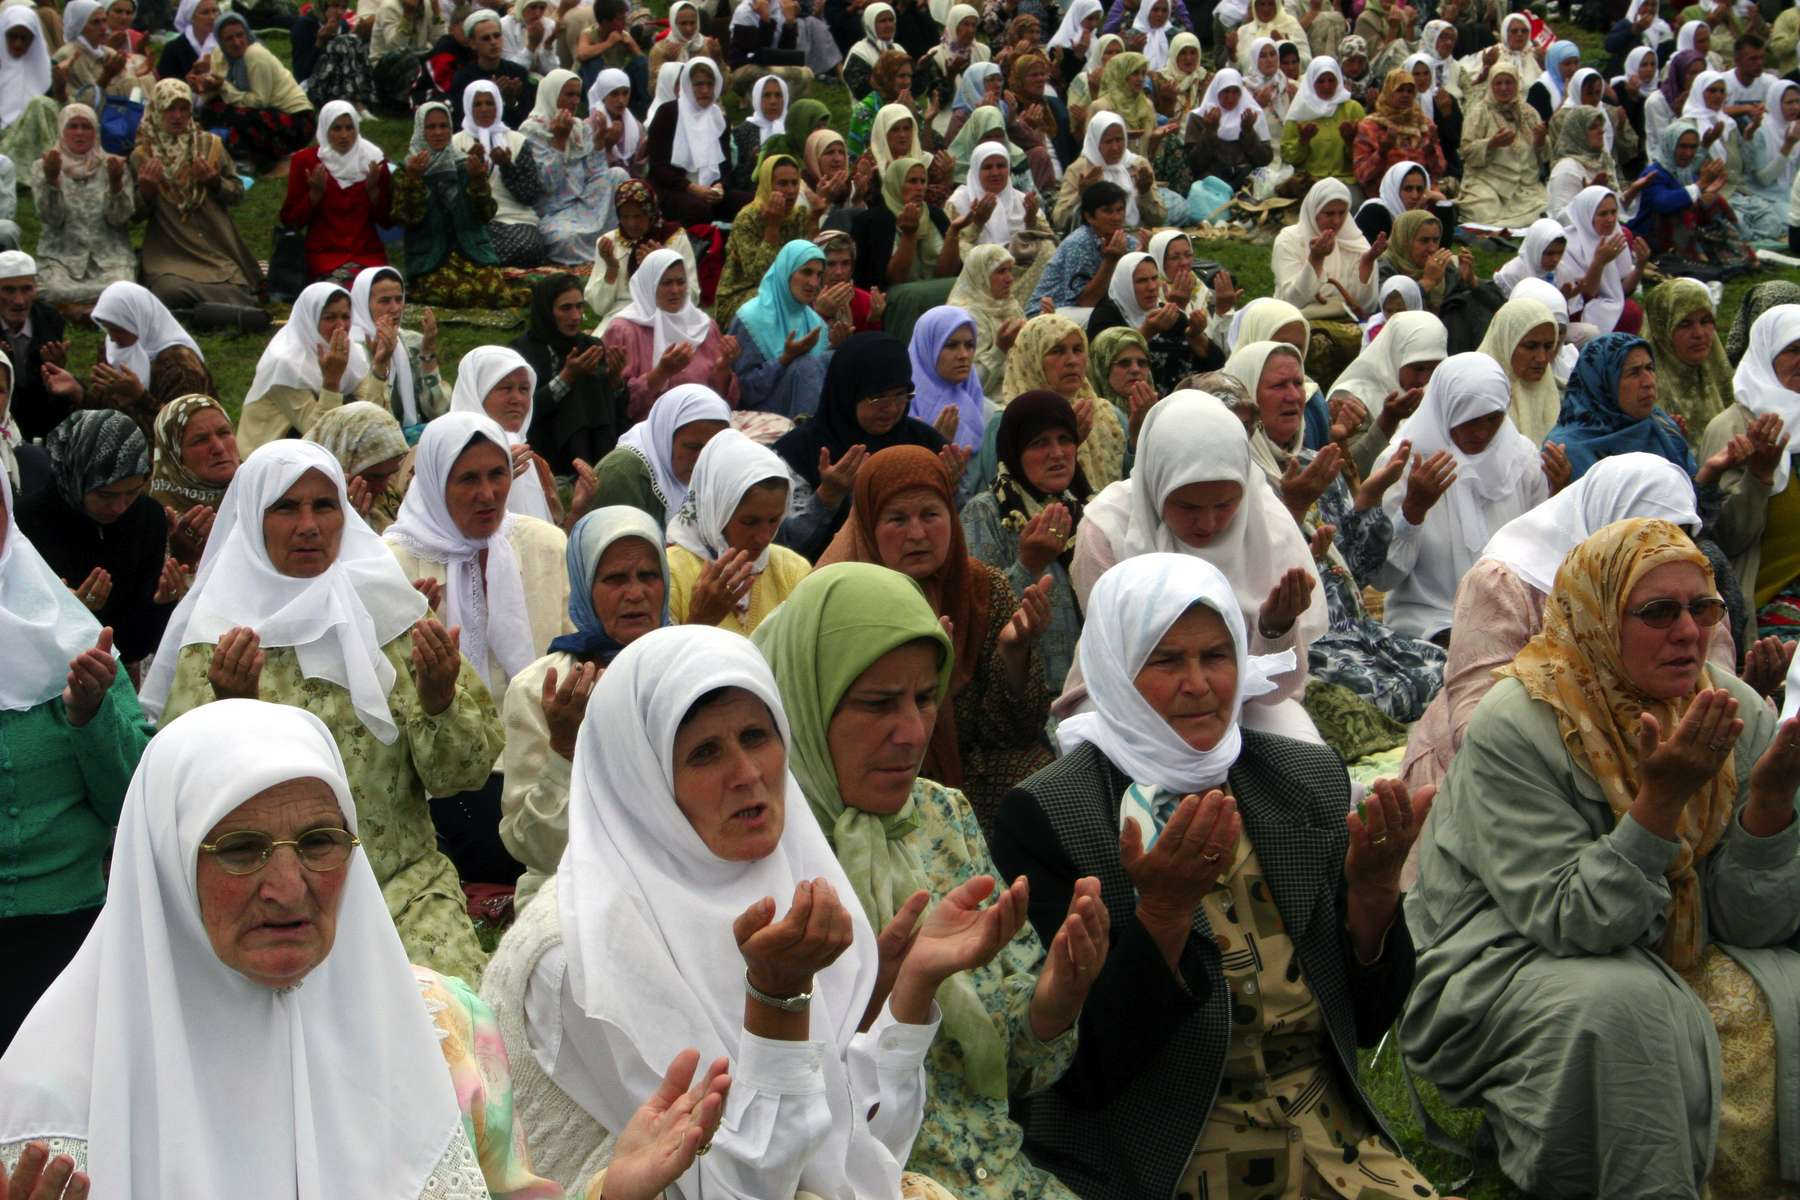 Muslim women in prayer on the day of the tenth anniversary of the Srebrenica massacre. Some 7,000 to 8,000 Muslim men and boys were killed by Serb forces in 1995, in the worst genocide in Europe since World War II.